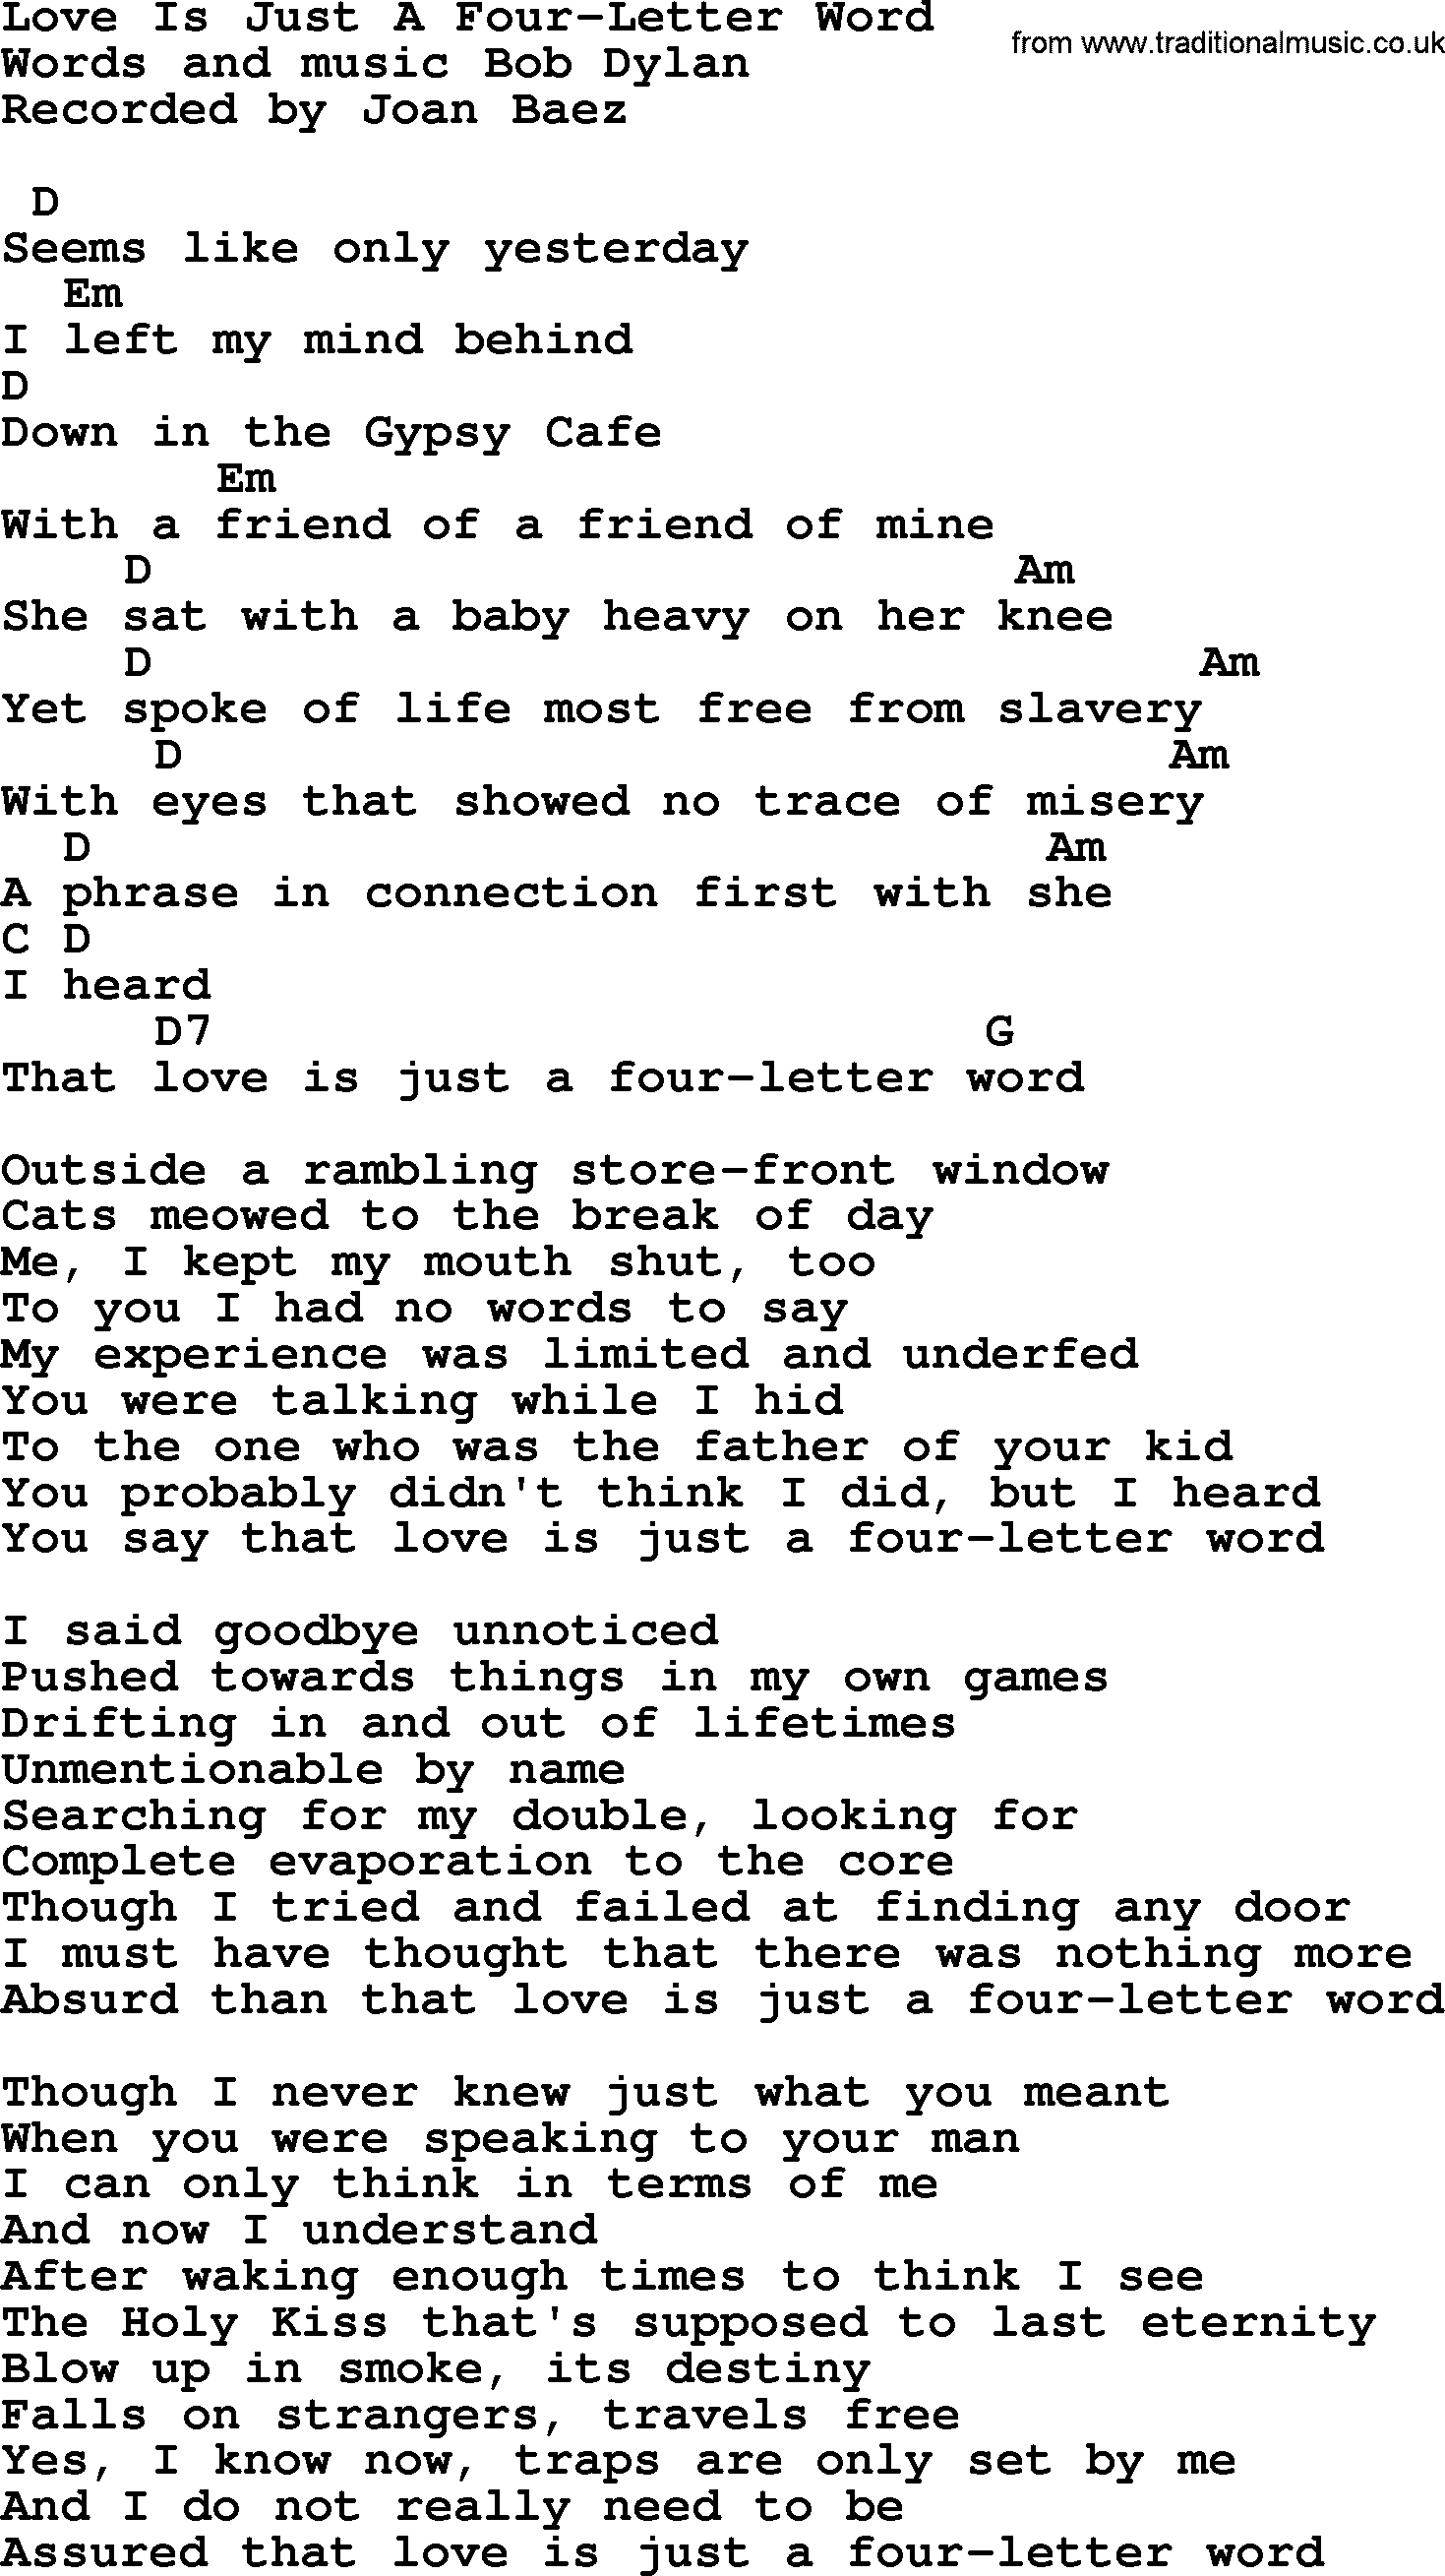 Bob Dylan Song  Love Is Just A FourLetter Word Lyrics And Chords